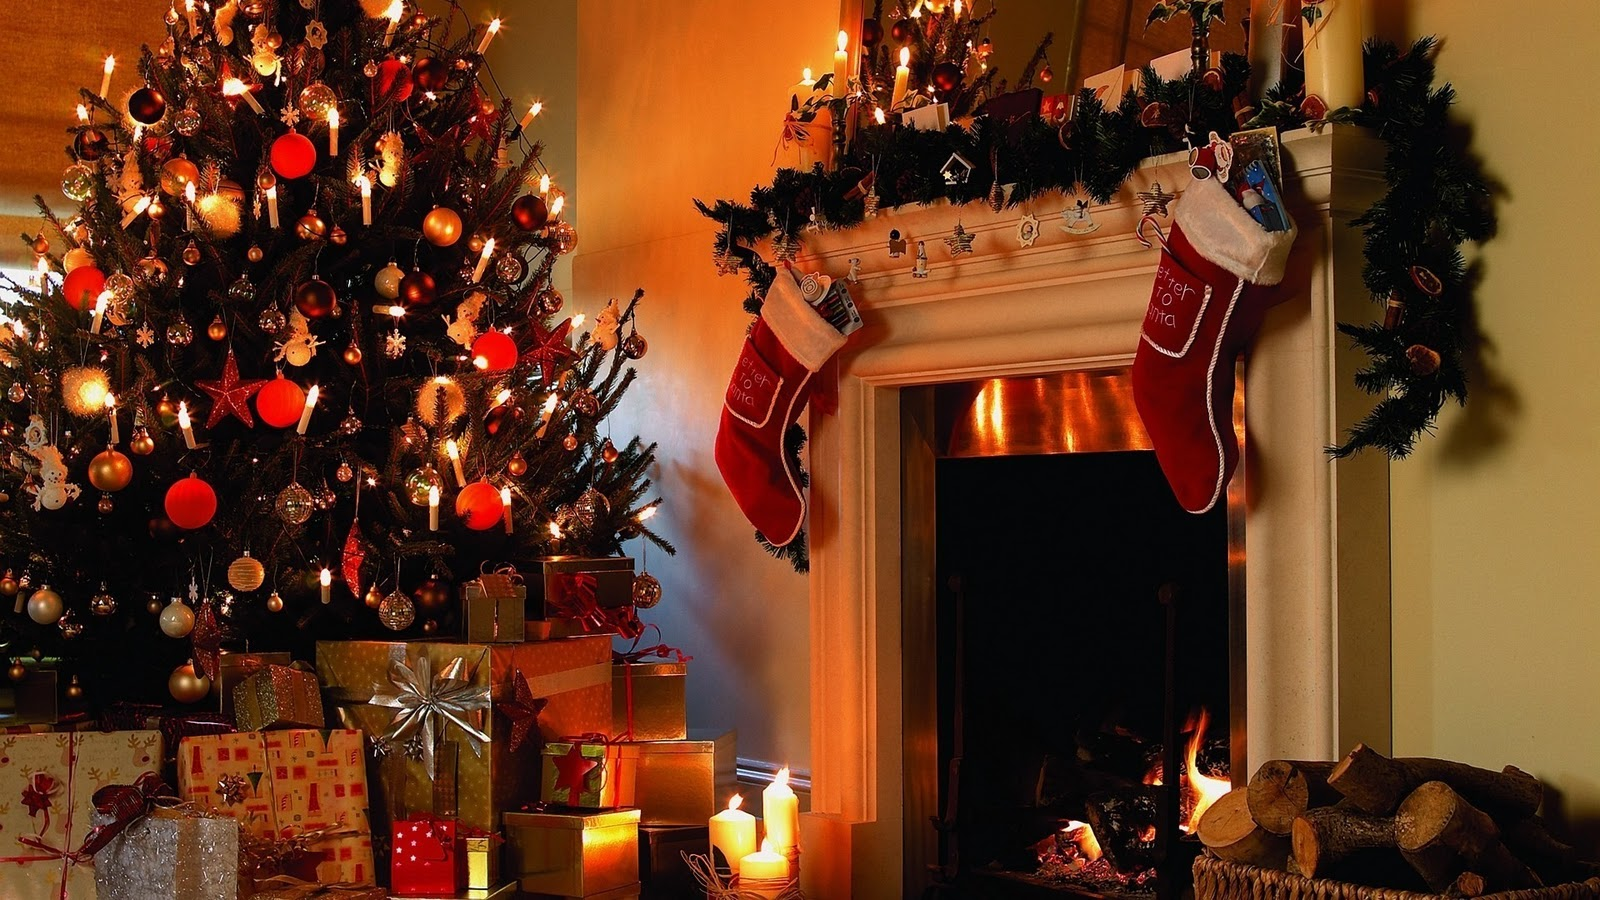 christmas tree and fireplace wallpaper christmas tree nature wallpaper green merry christmas wallpaper free christmas desktop free animated christmas - Free Christmas Desktop Backgrounds